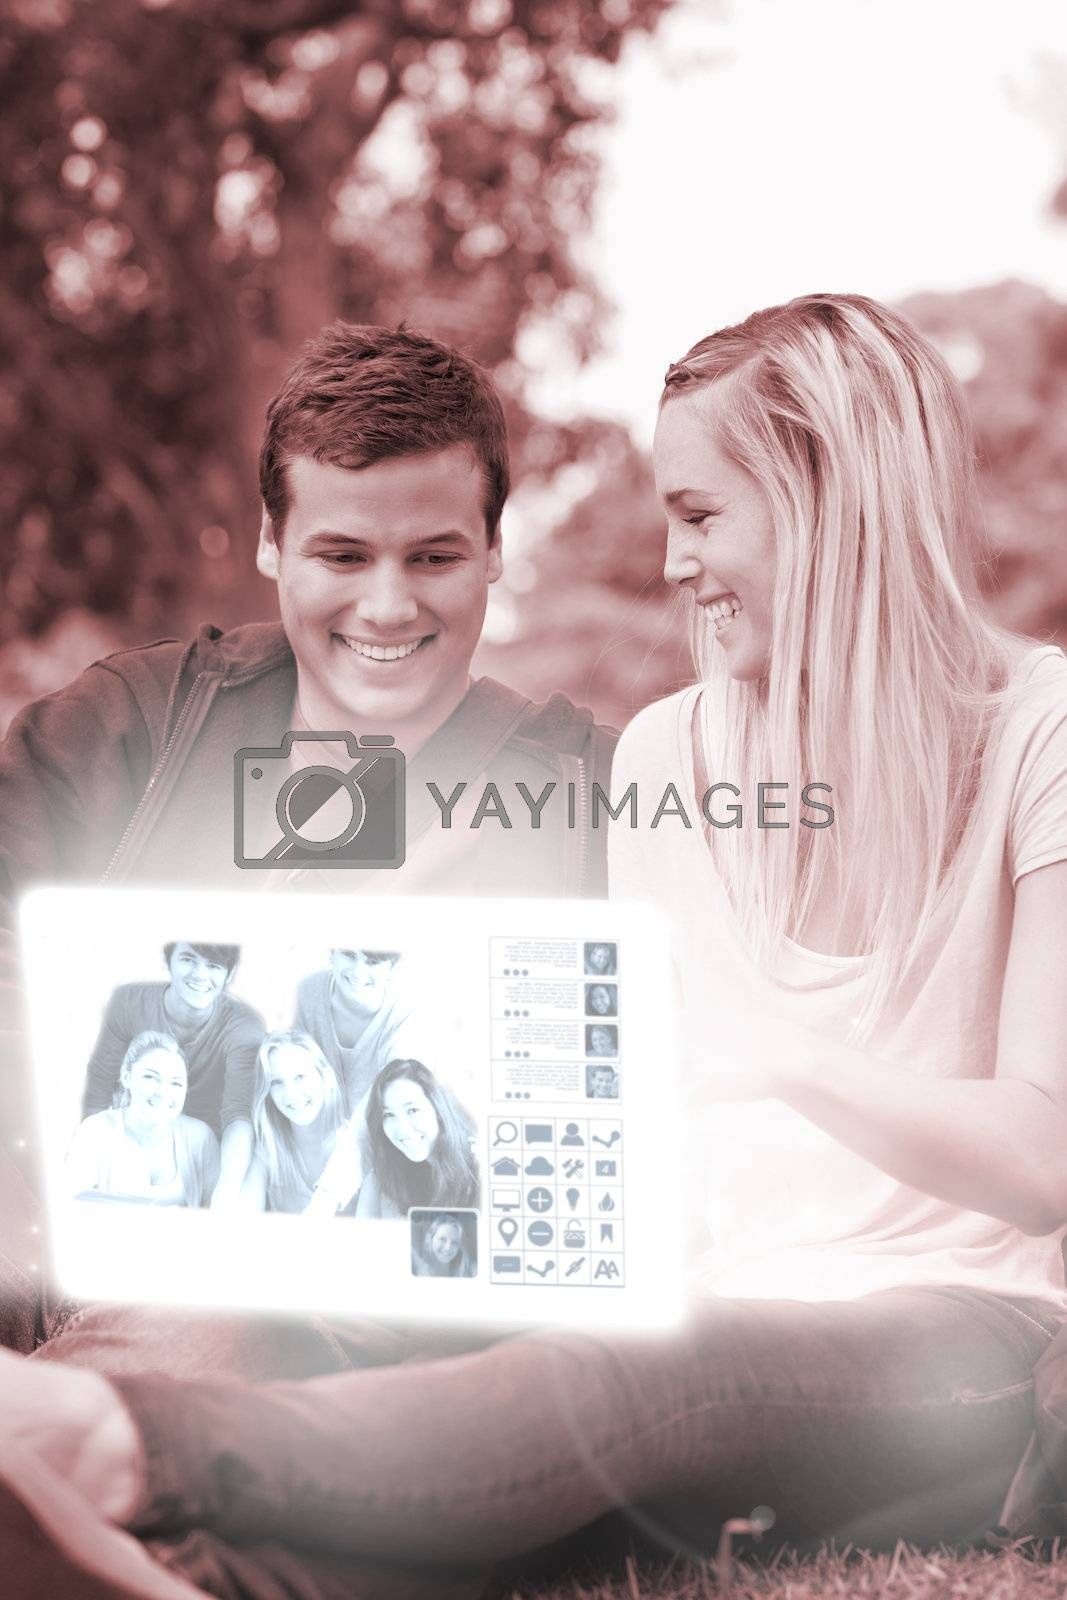 Cheerful young couple watching photos on digital interface by Wavebreakmedia